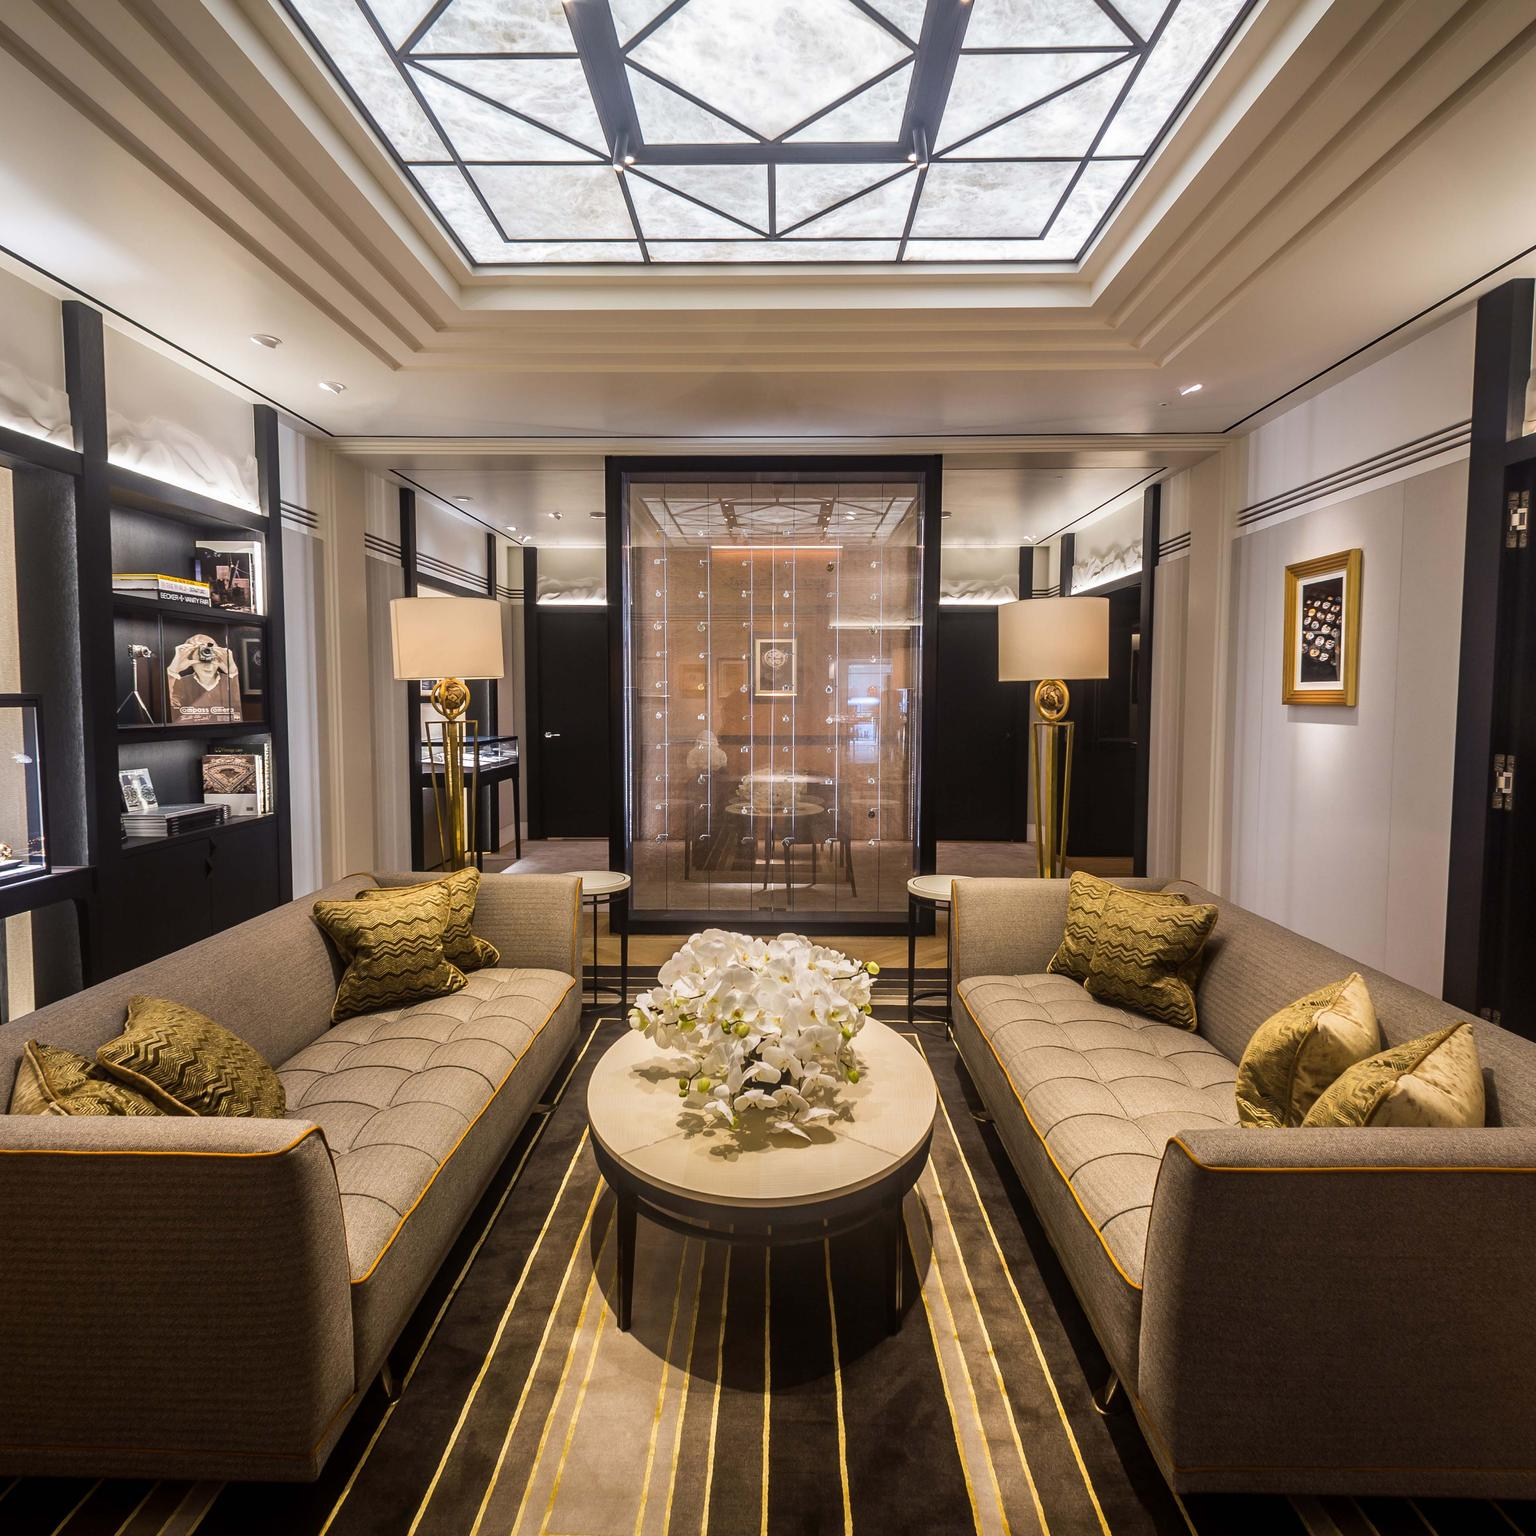 Jaeger-LeCoultre invites visitors to discover its rich universe in the Heritage Room of its new flagship boutique on Old Bond Street in London.